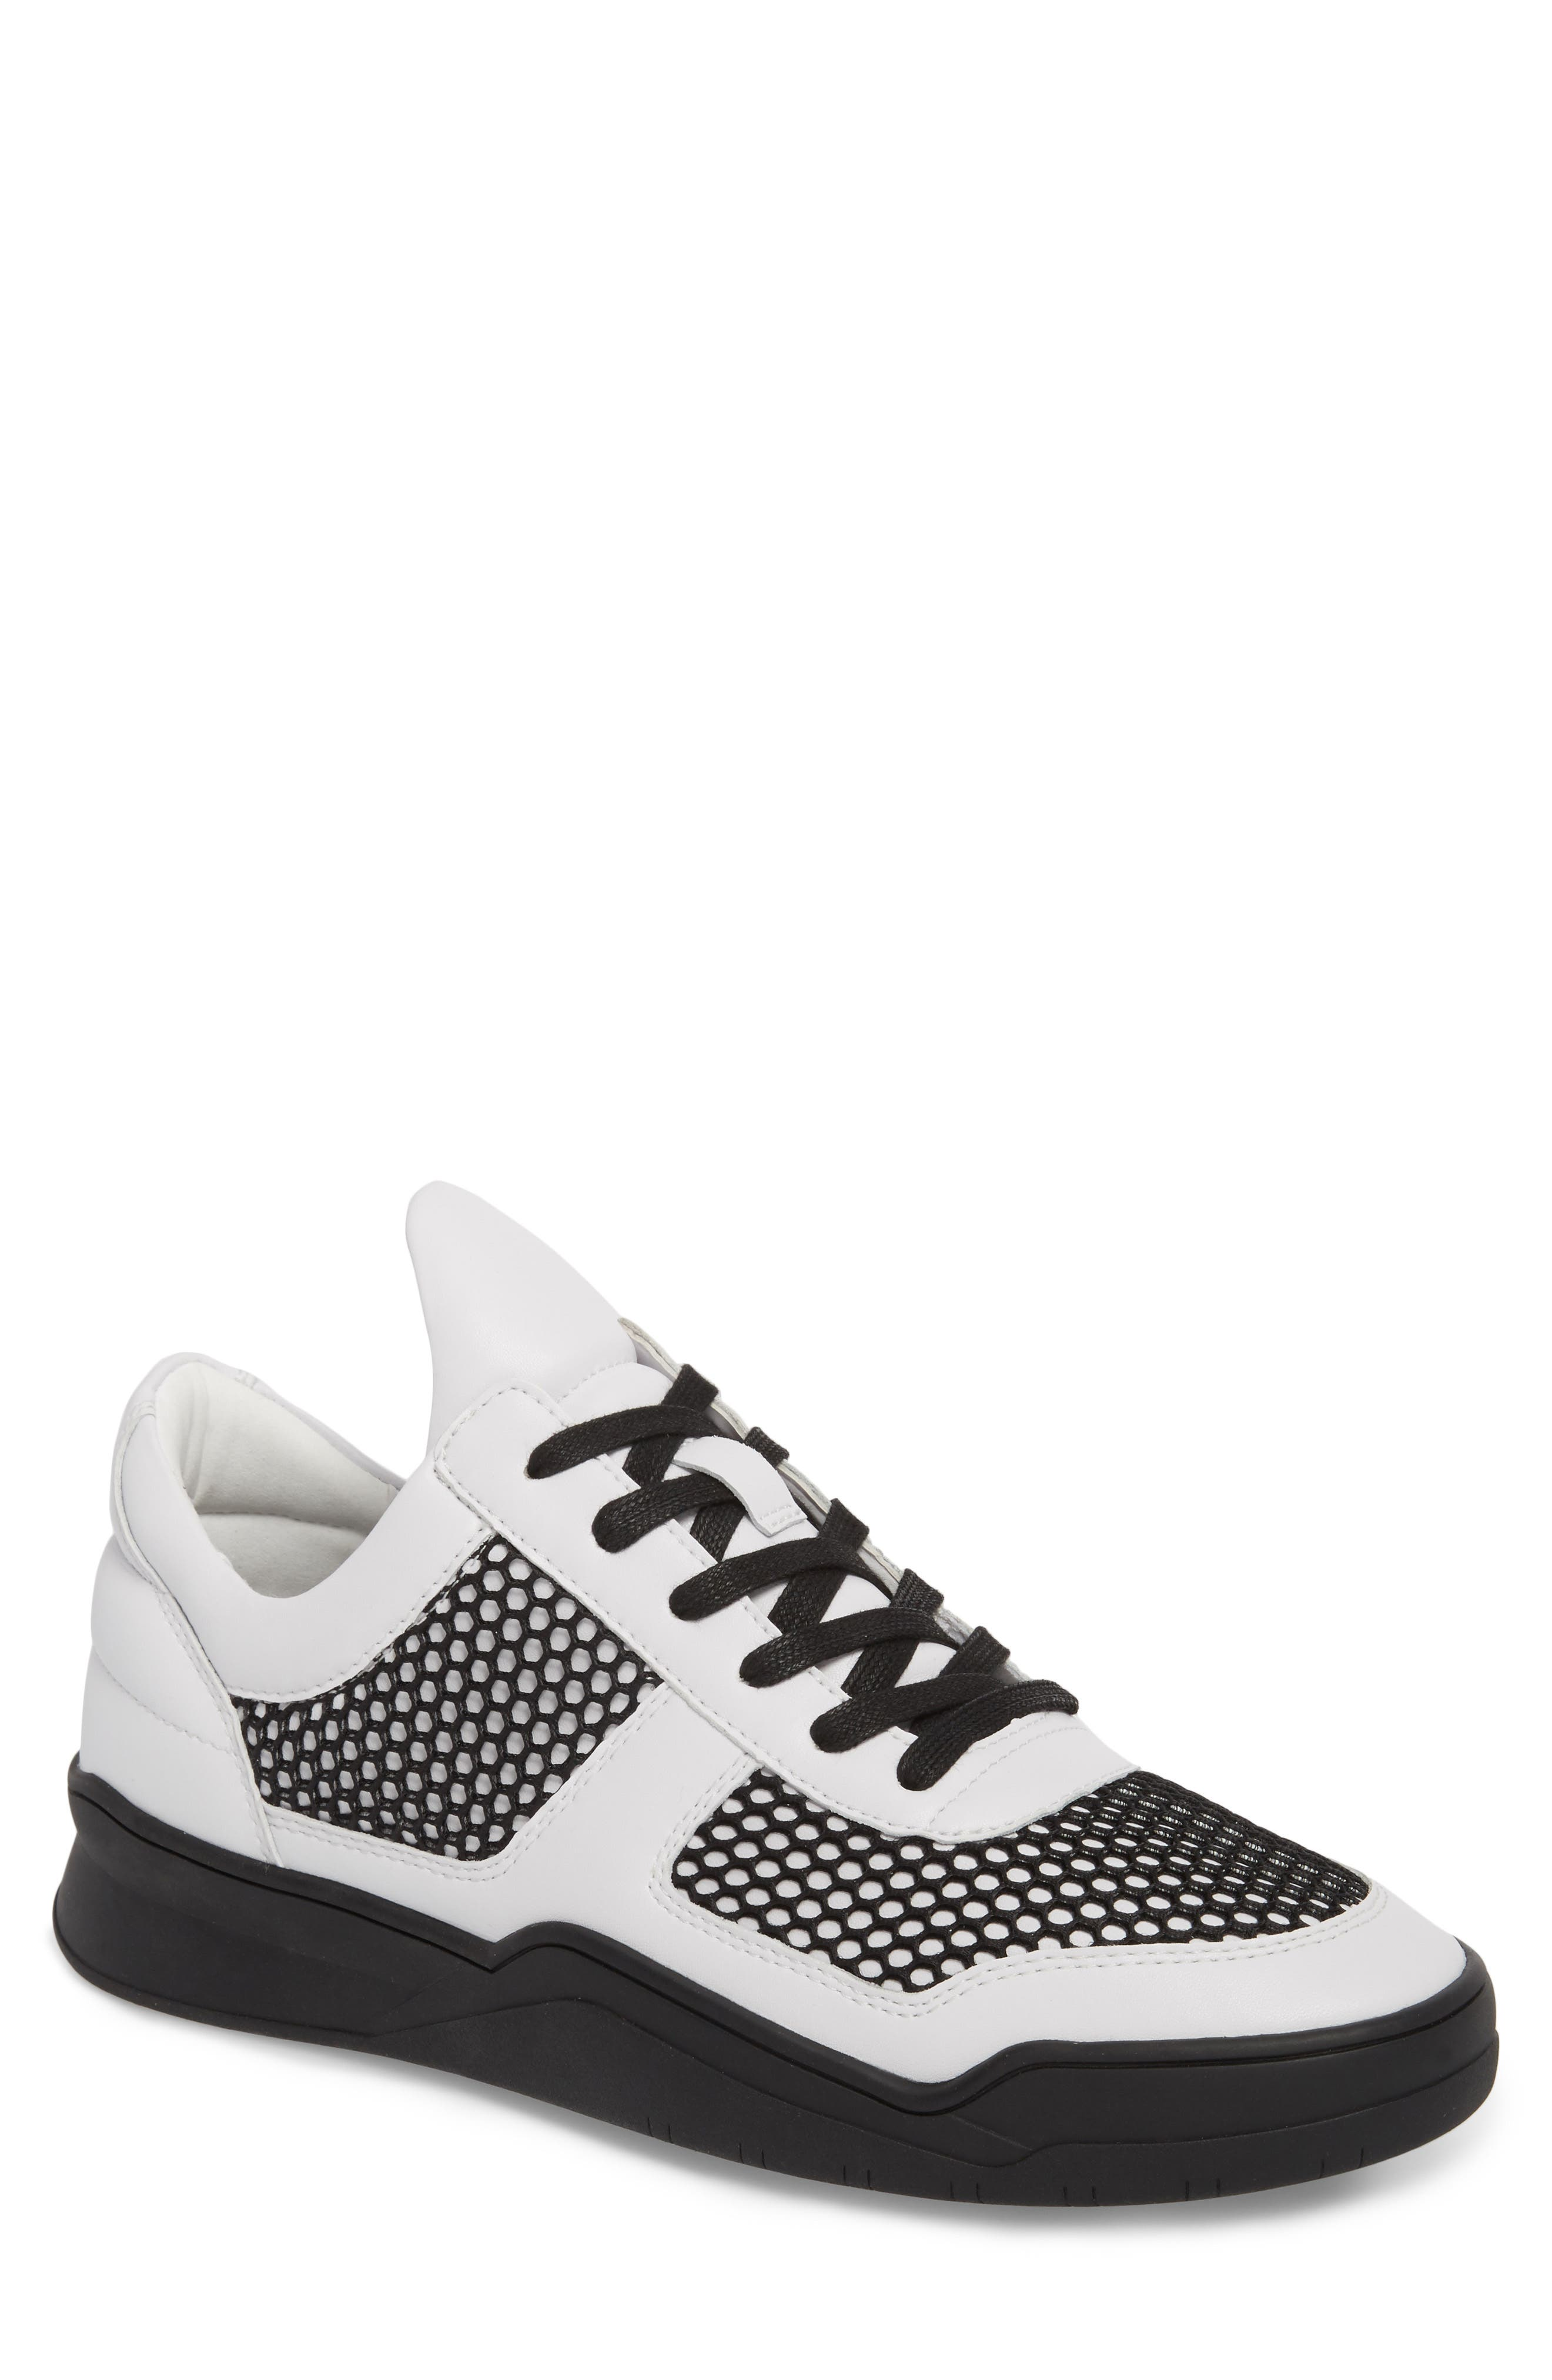 Low-Top Sneaker,                         Main,                         color, BLACK/WHITE